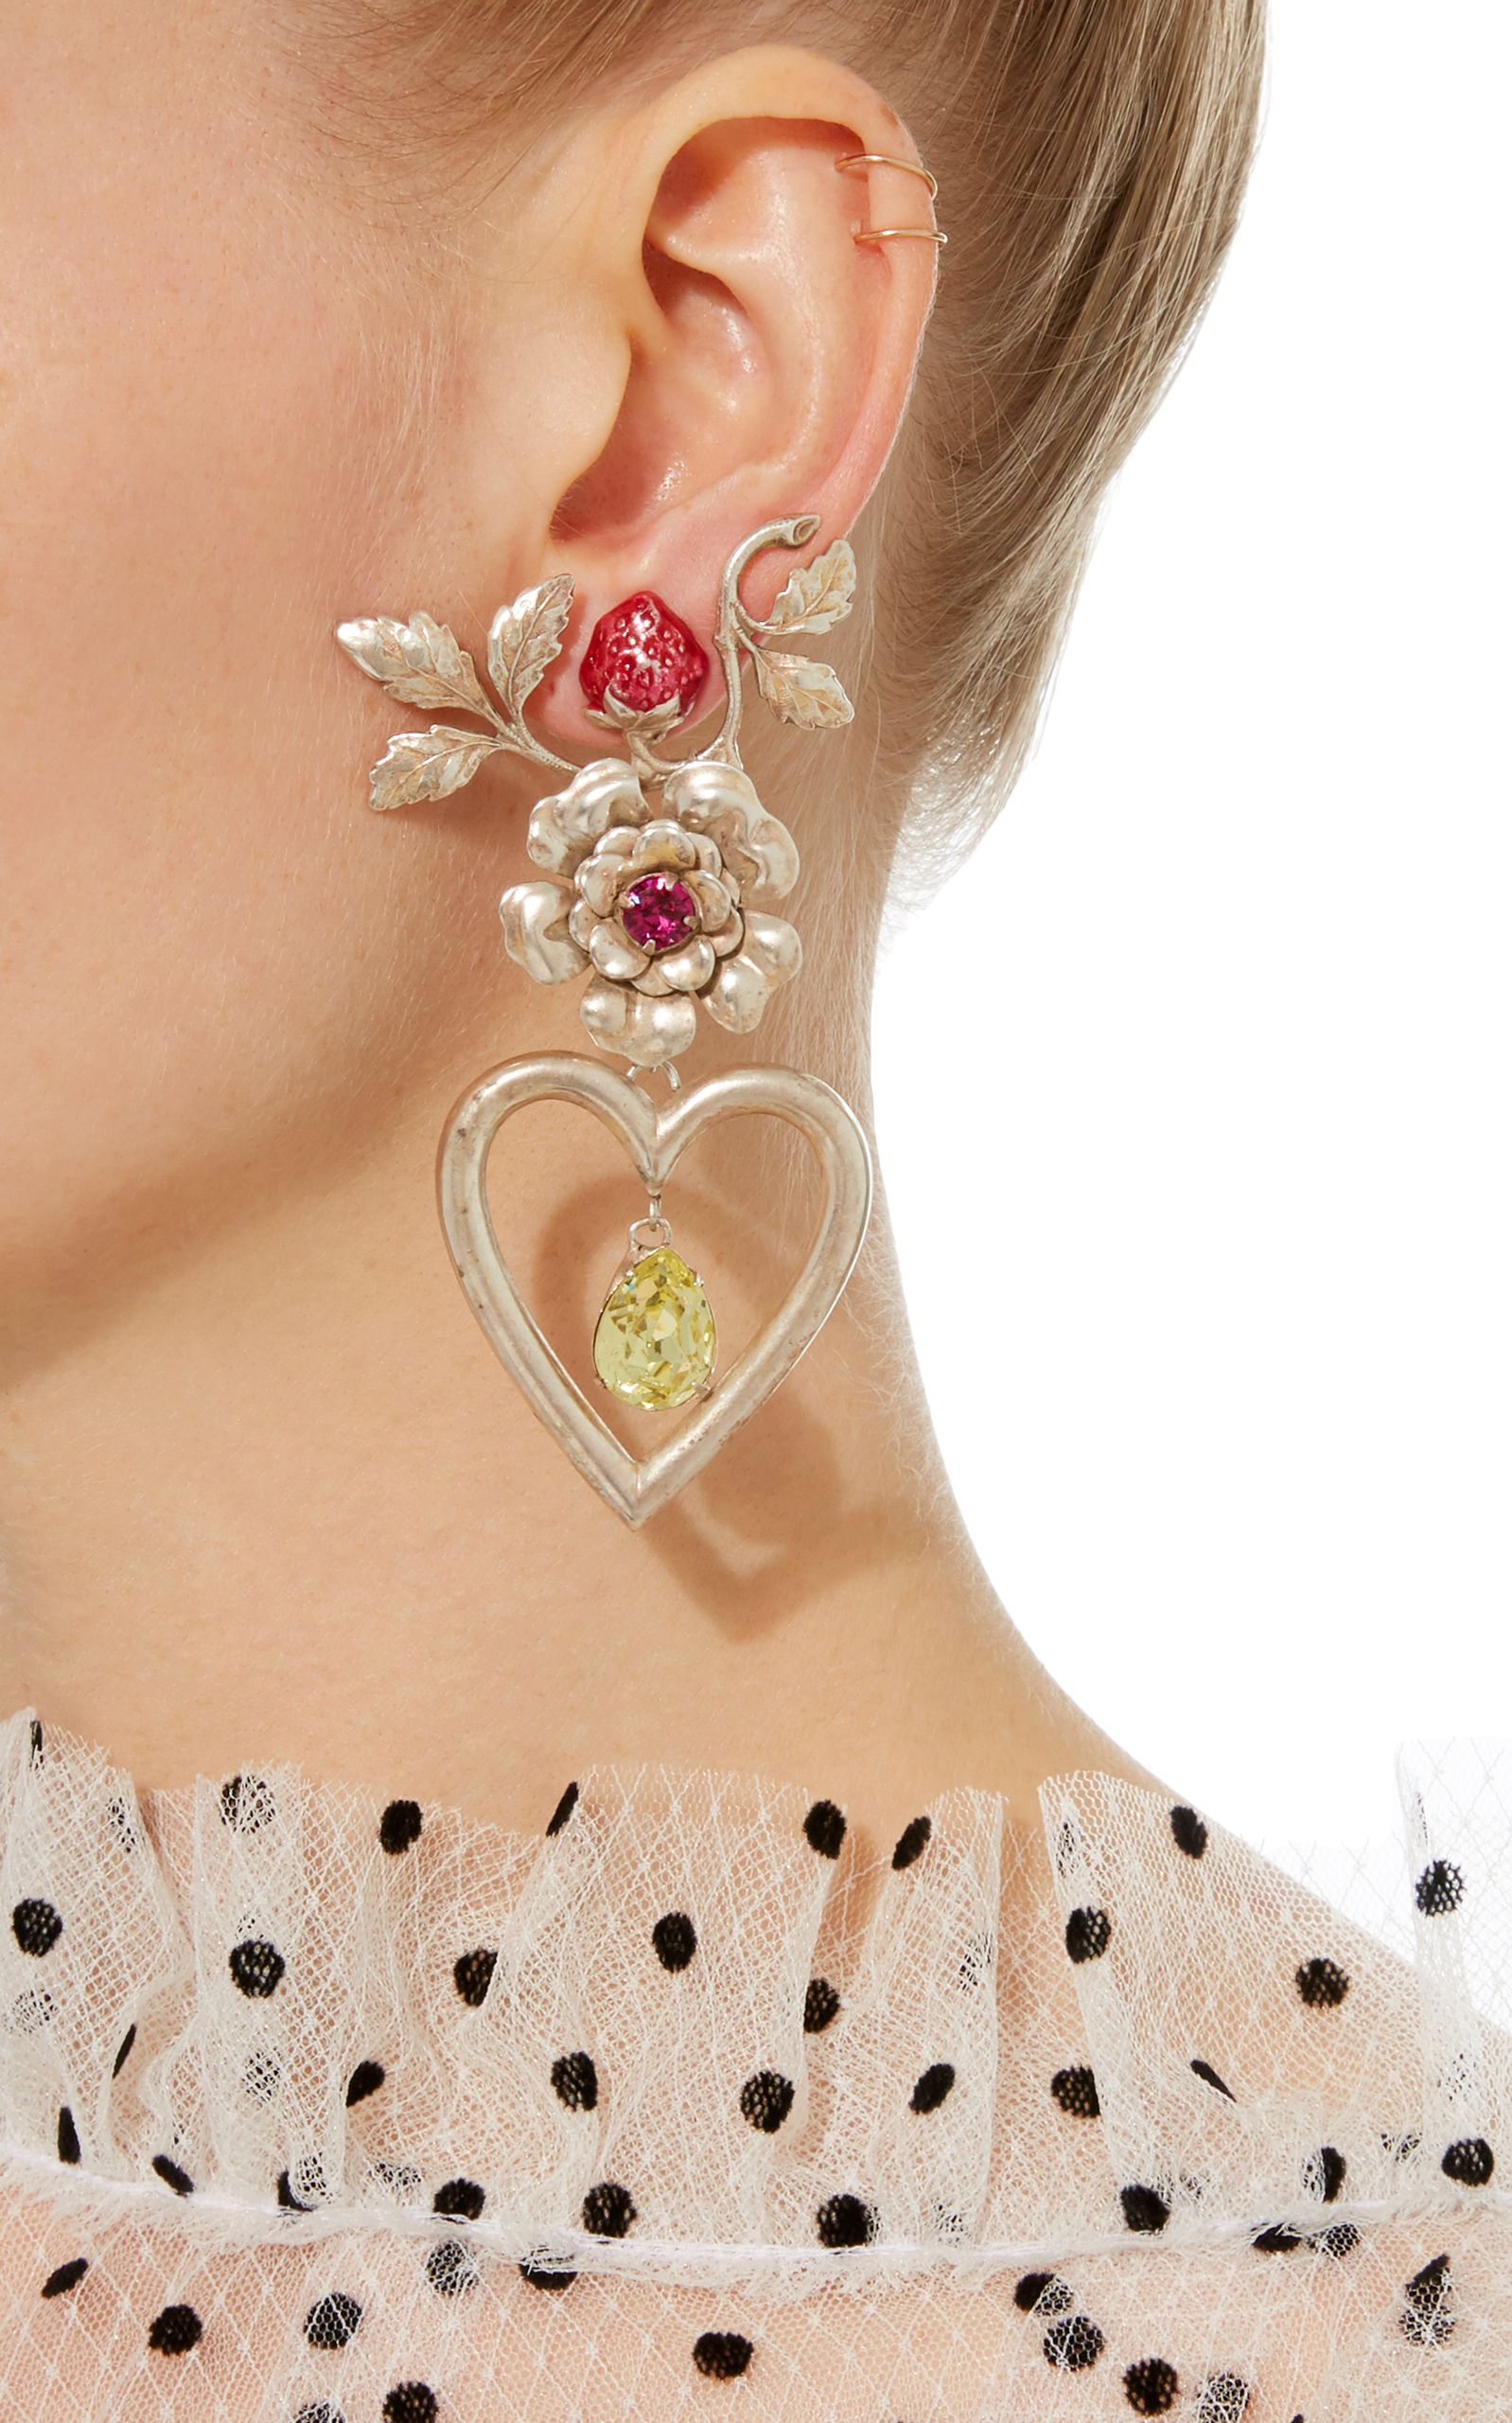 Rodarte Silver Flower Heart And Strawberry Earrings With Swarovski Crystal Details